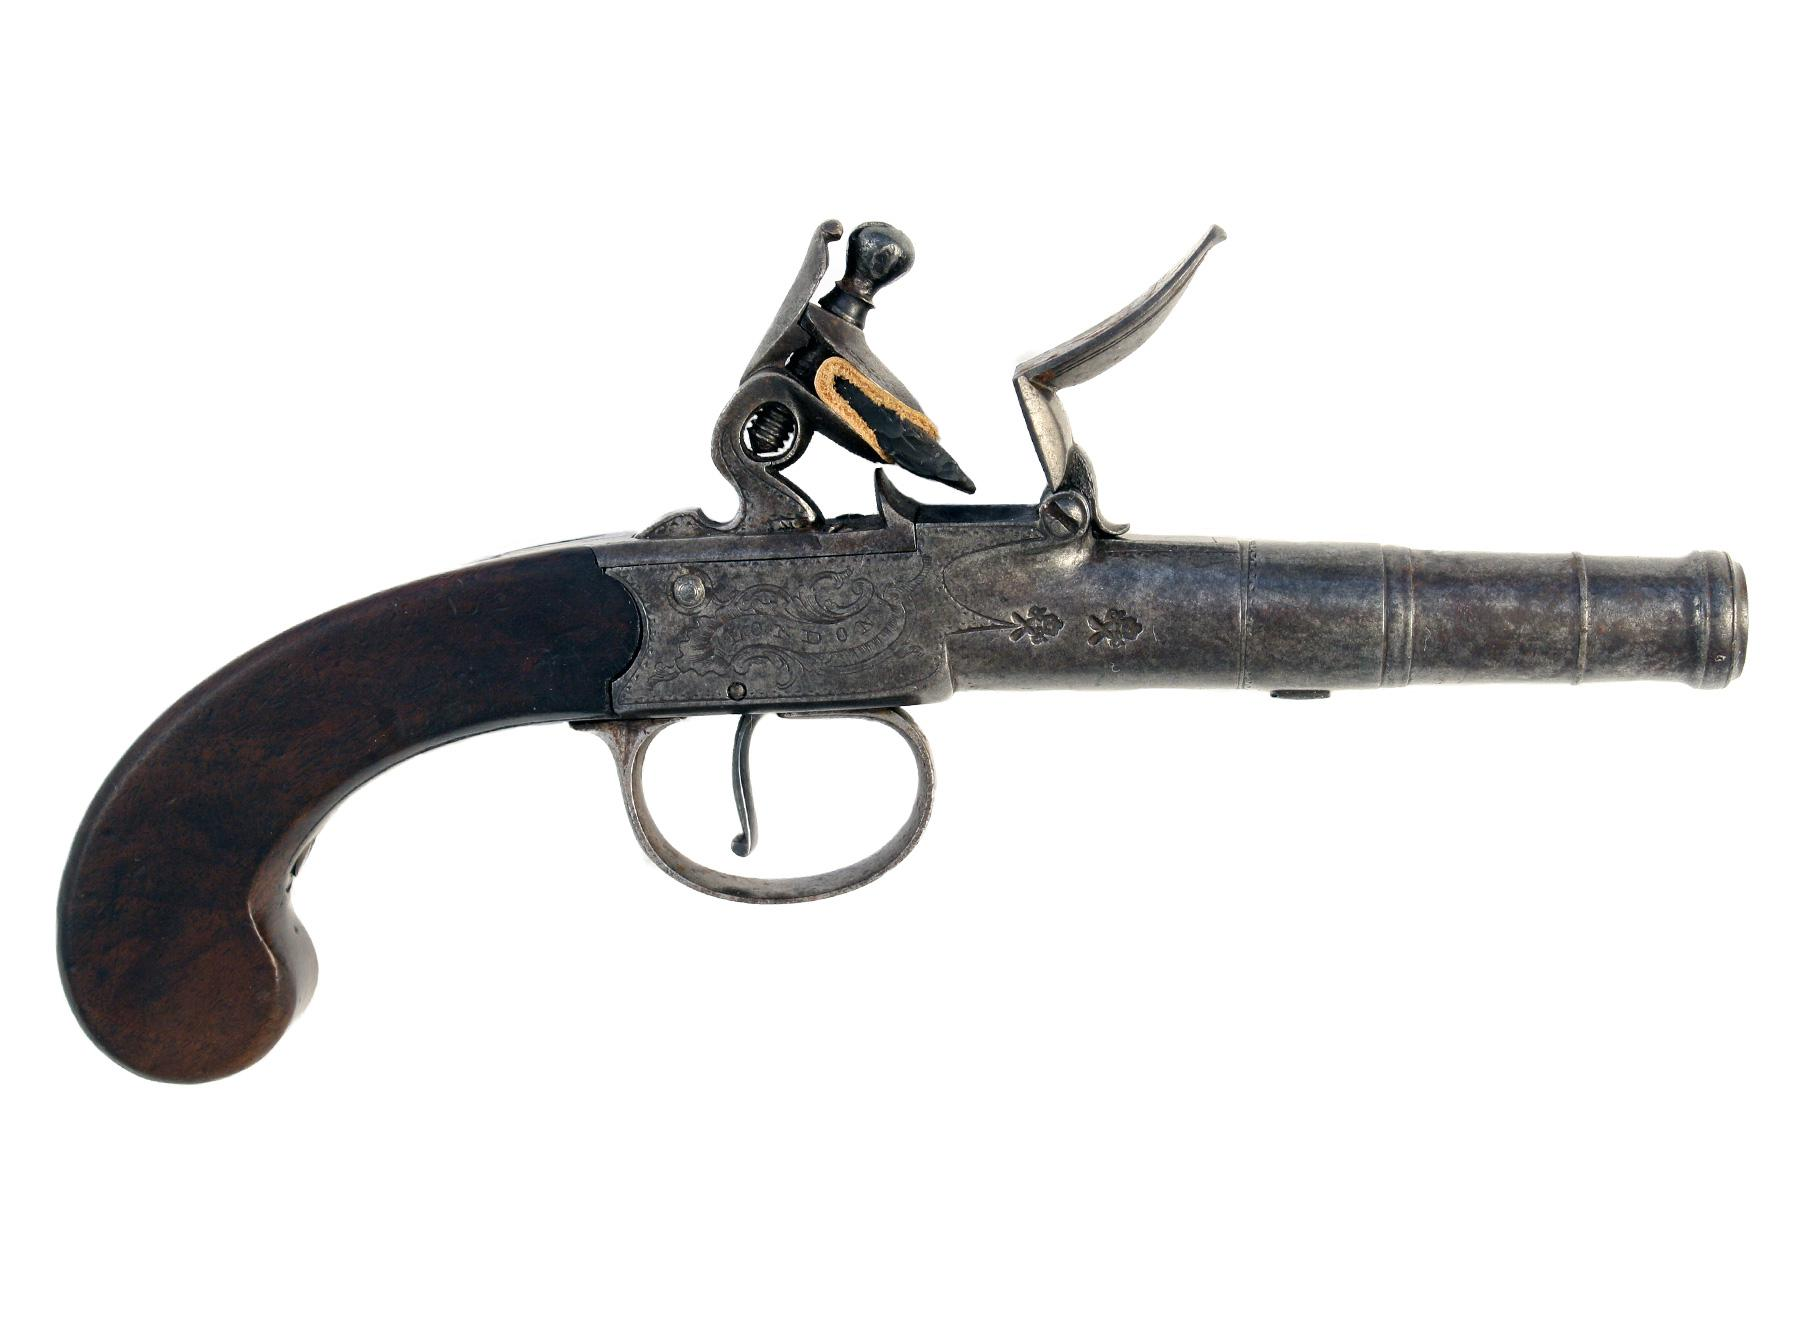 A Cannon Barrelled Pistol